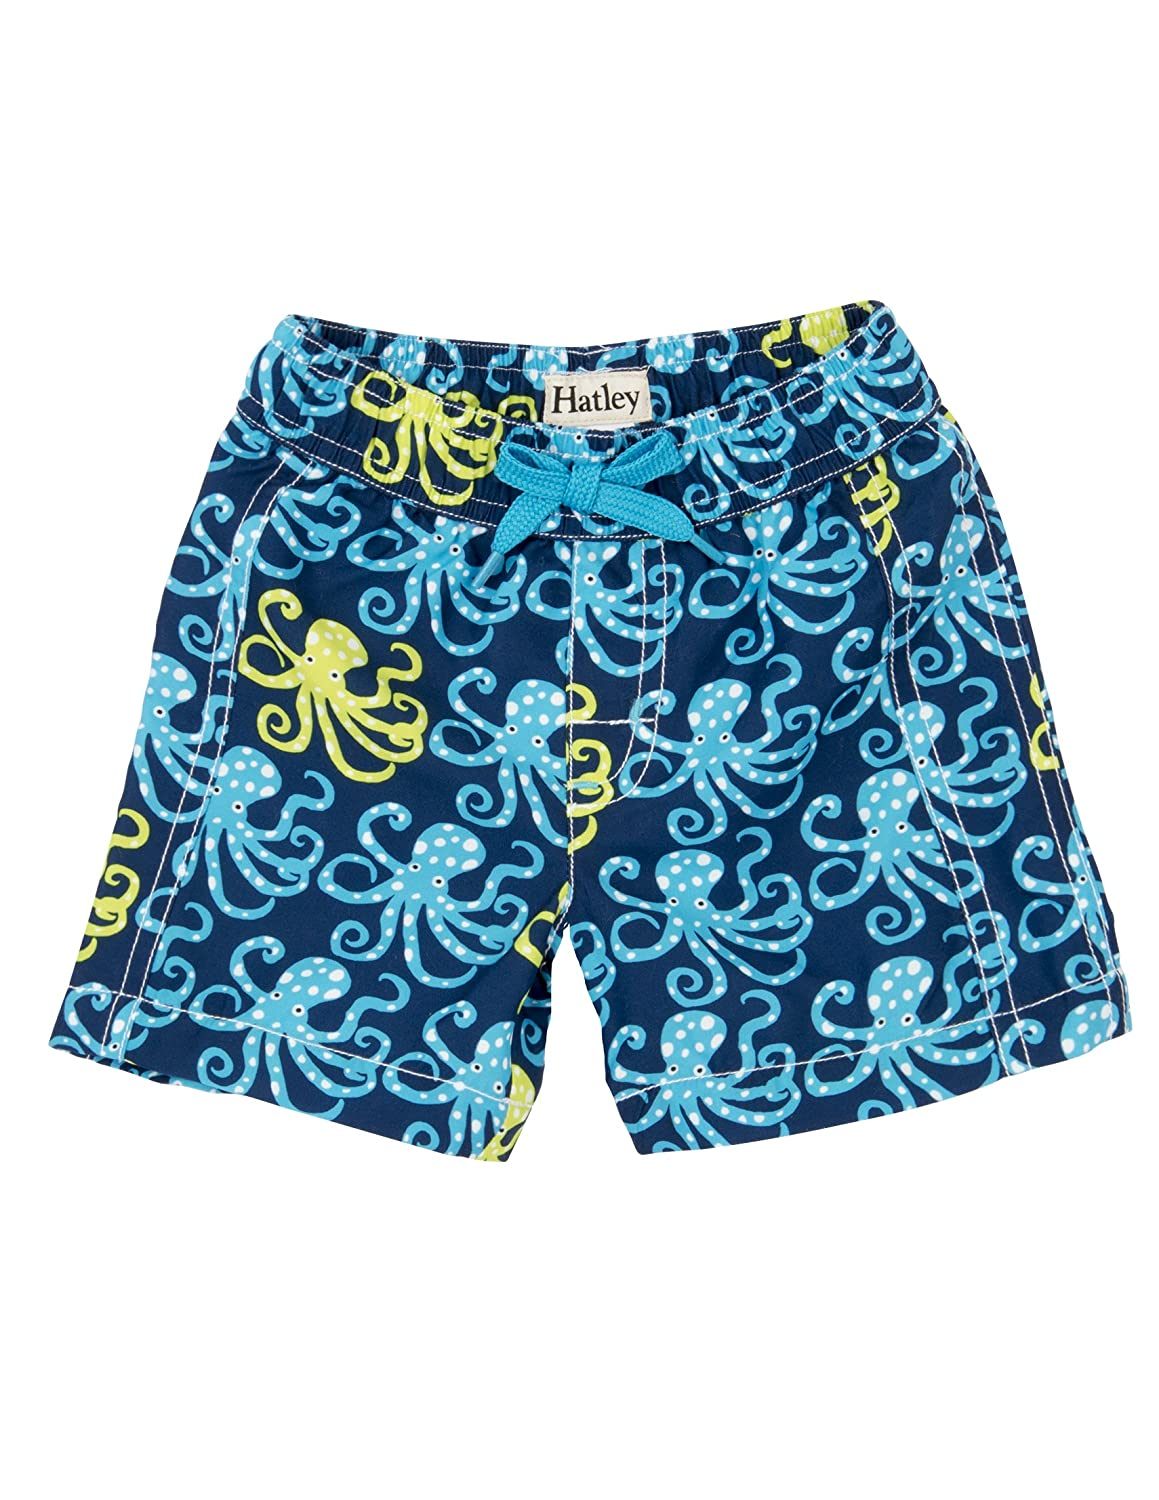 Hatley Boys' Baby Swim Trunks Hatley Children's Apparel BSISTBI